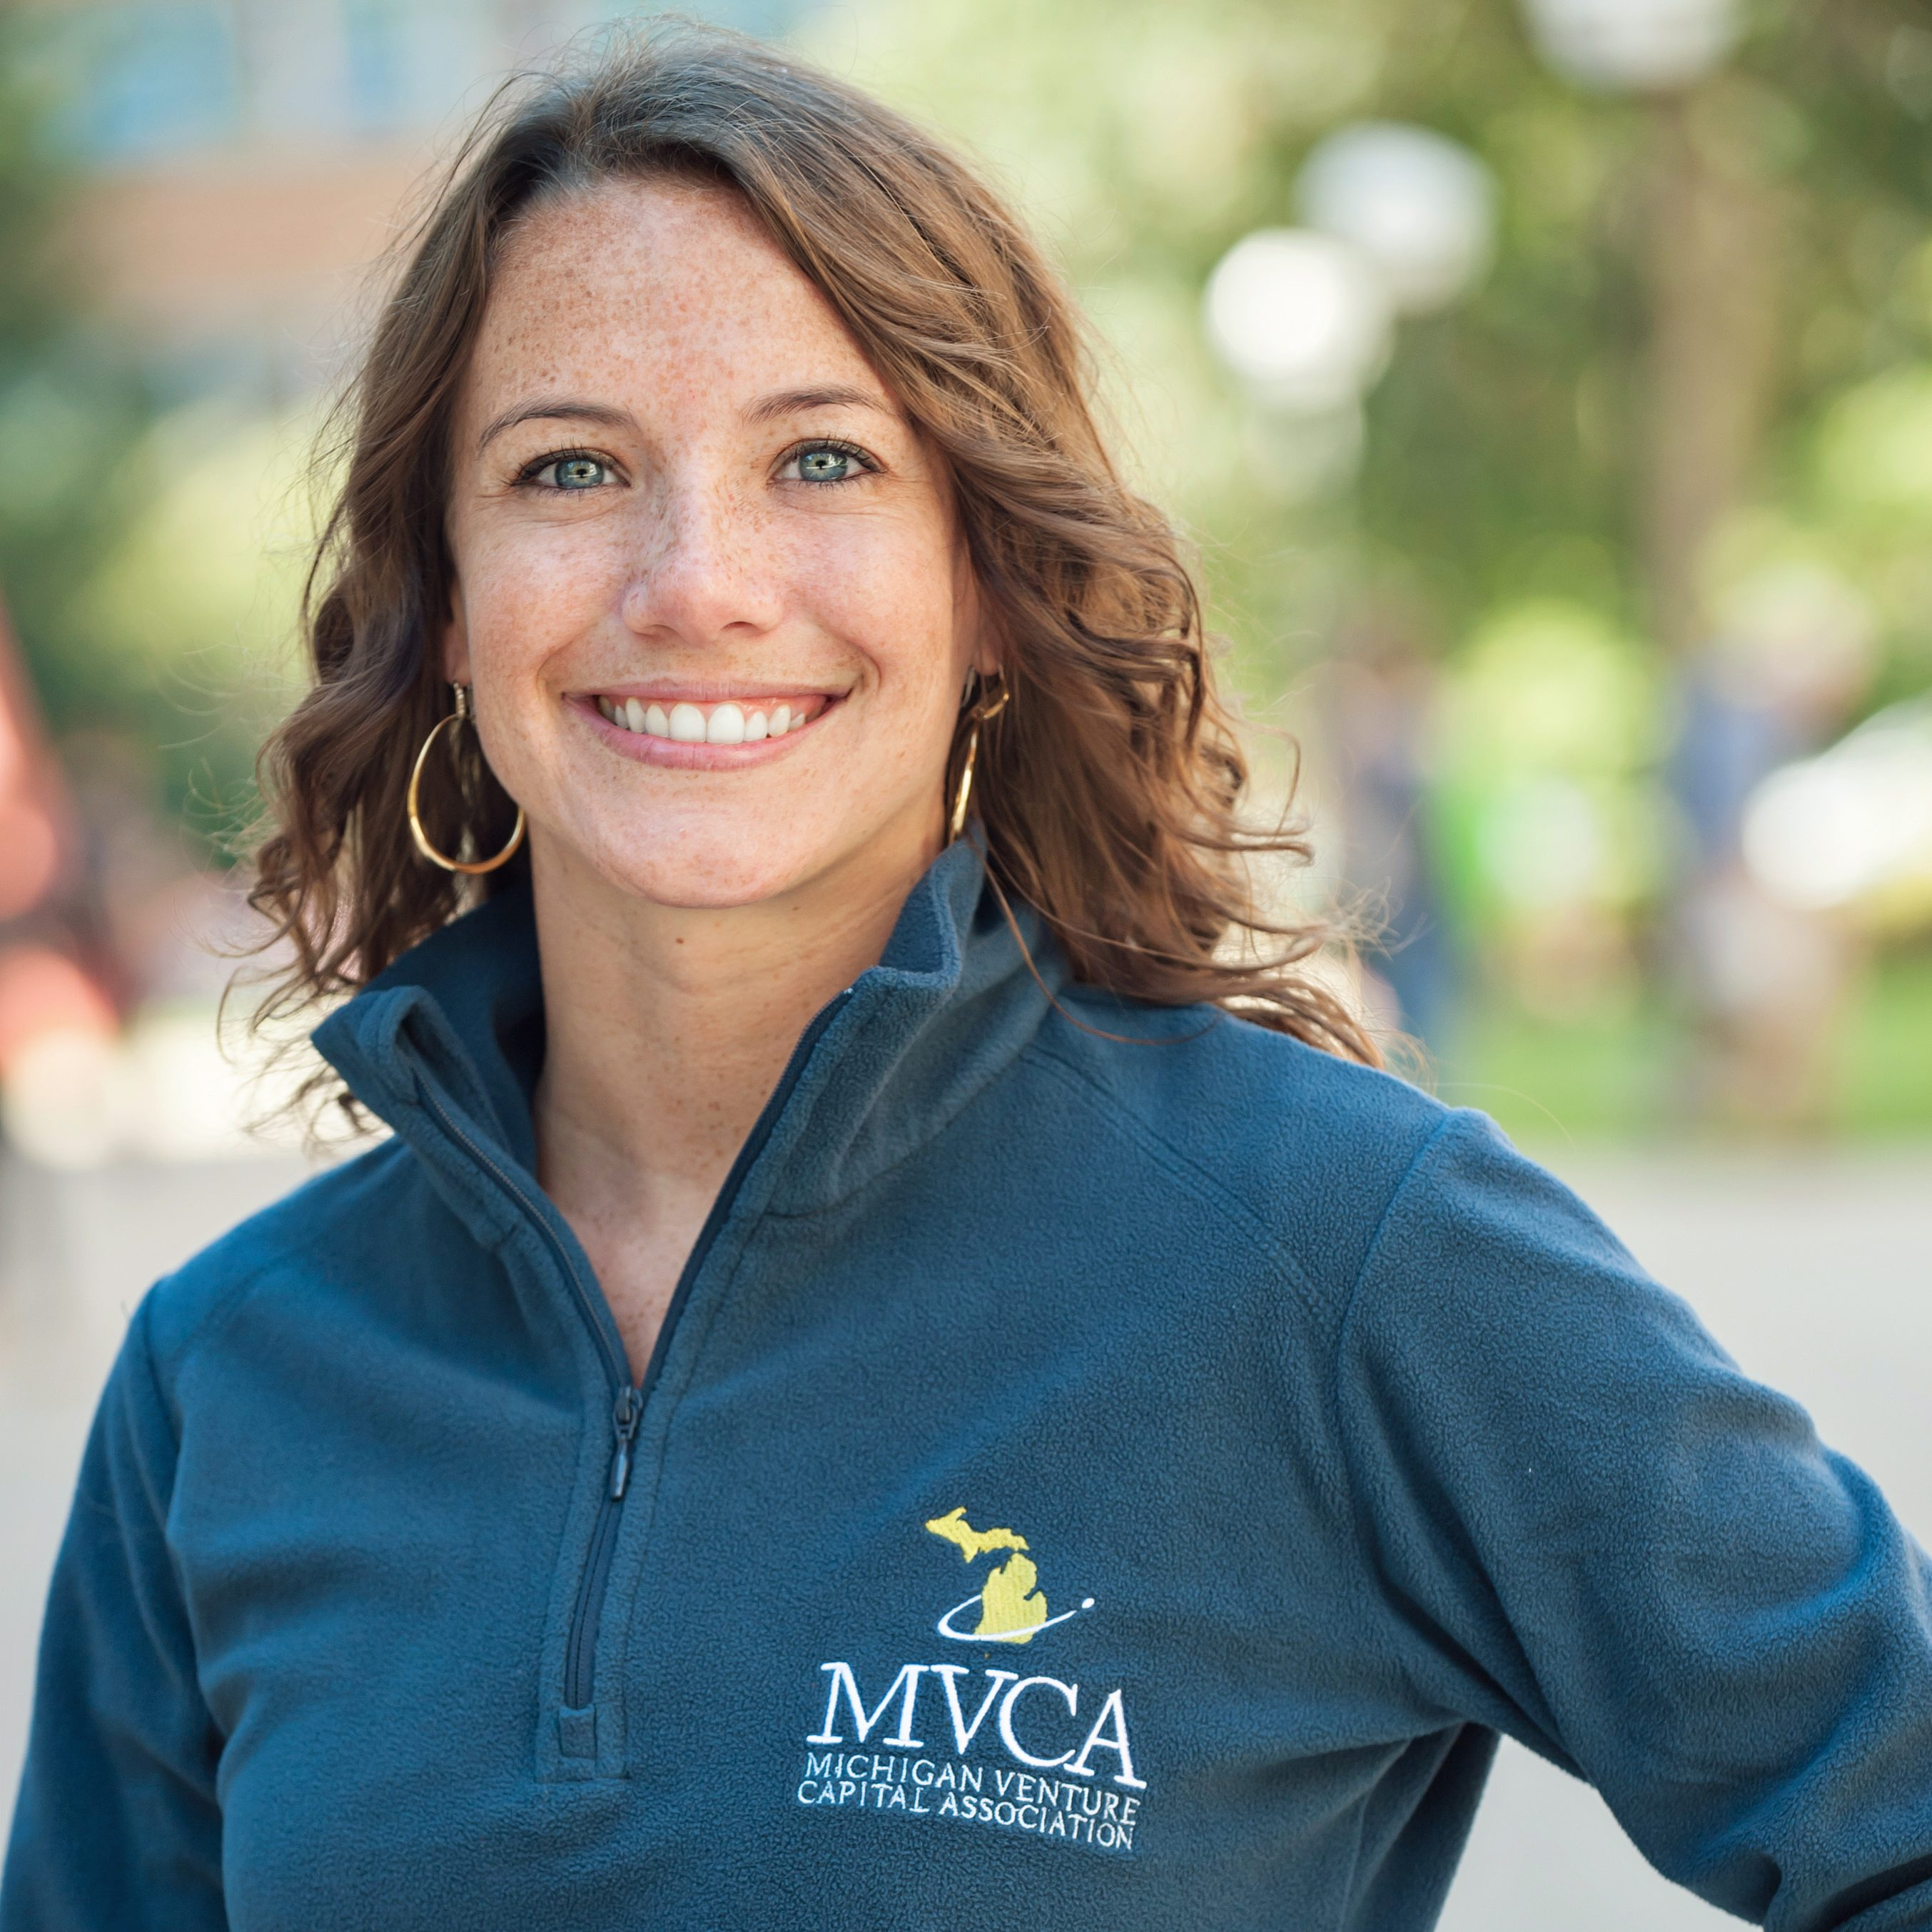 Molly Theis Michigan Venture Capital Association